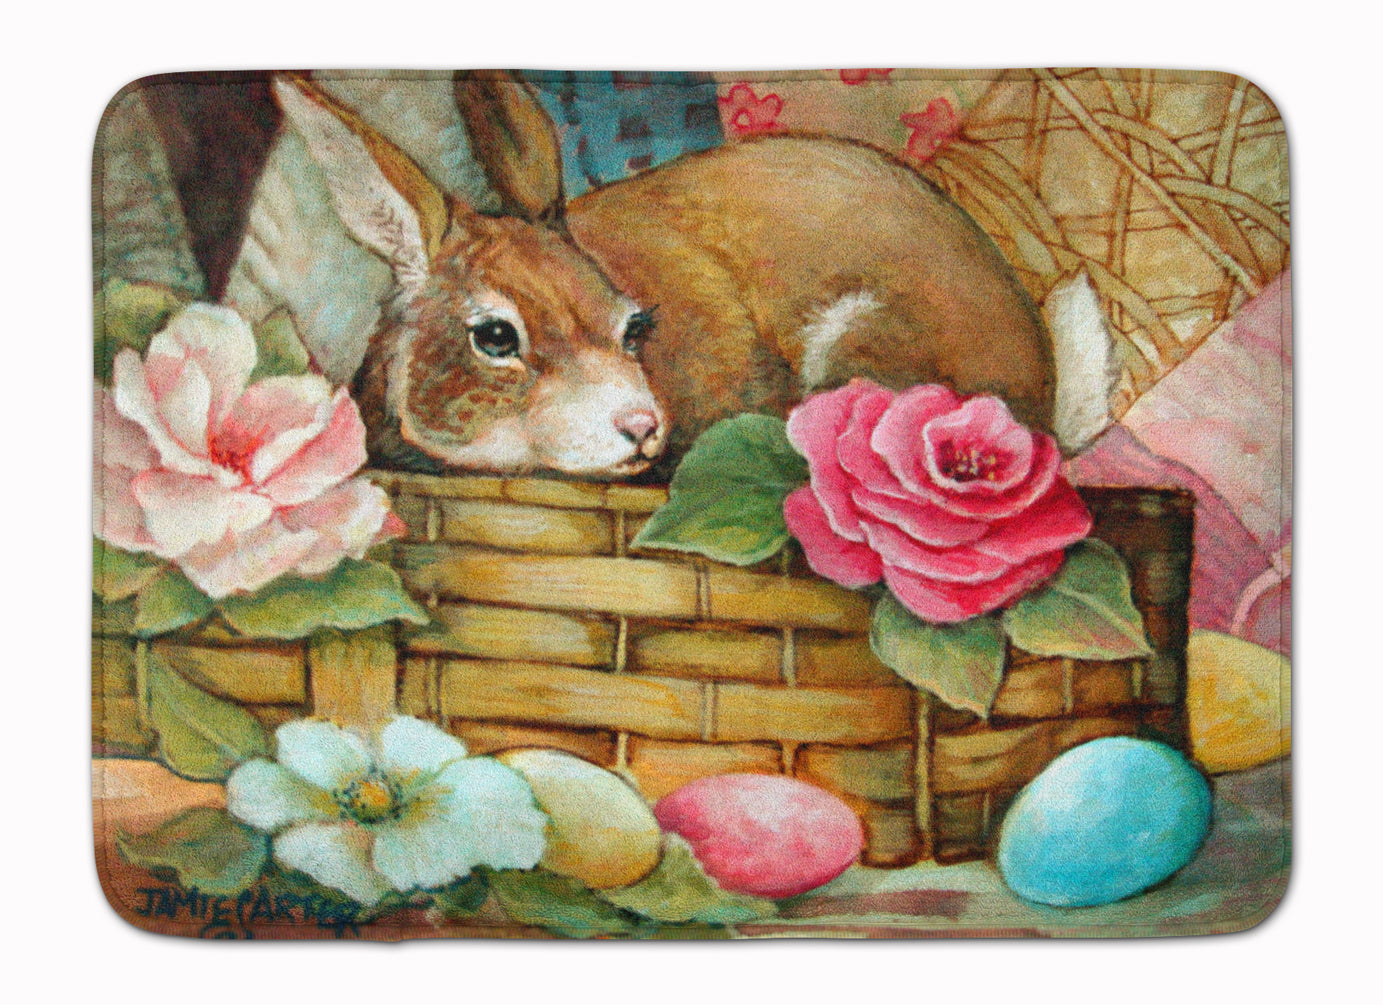 A Touch of Color Rabbit Easter Machine Washable Memory Foam Mat PJC1063RUG by Caroline's Treasures